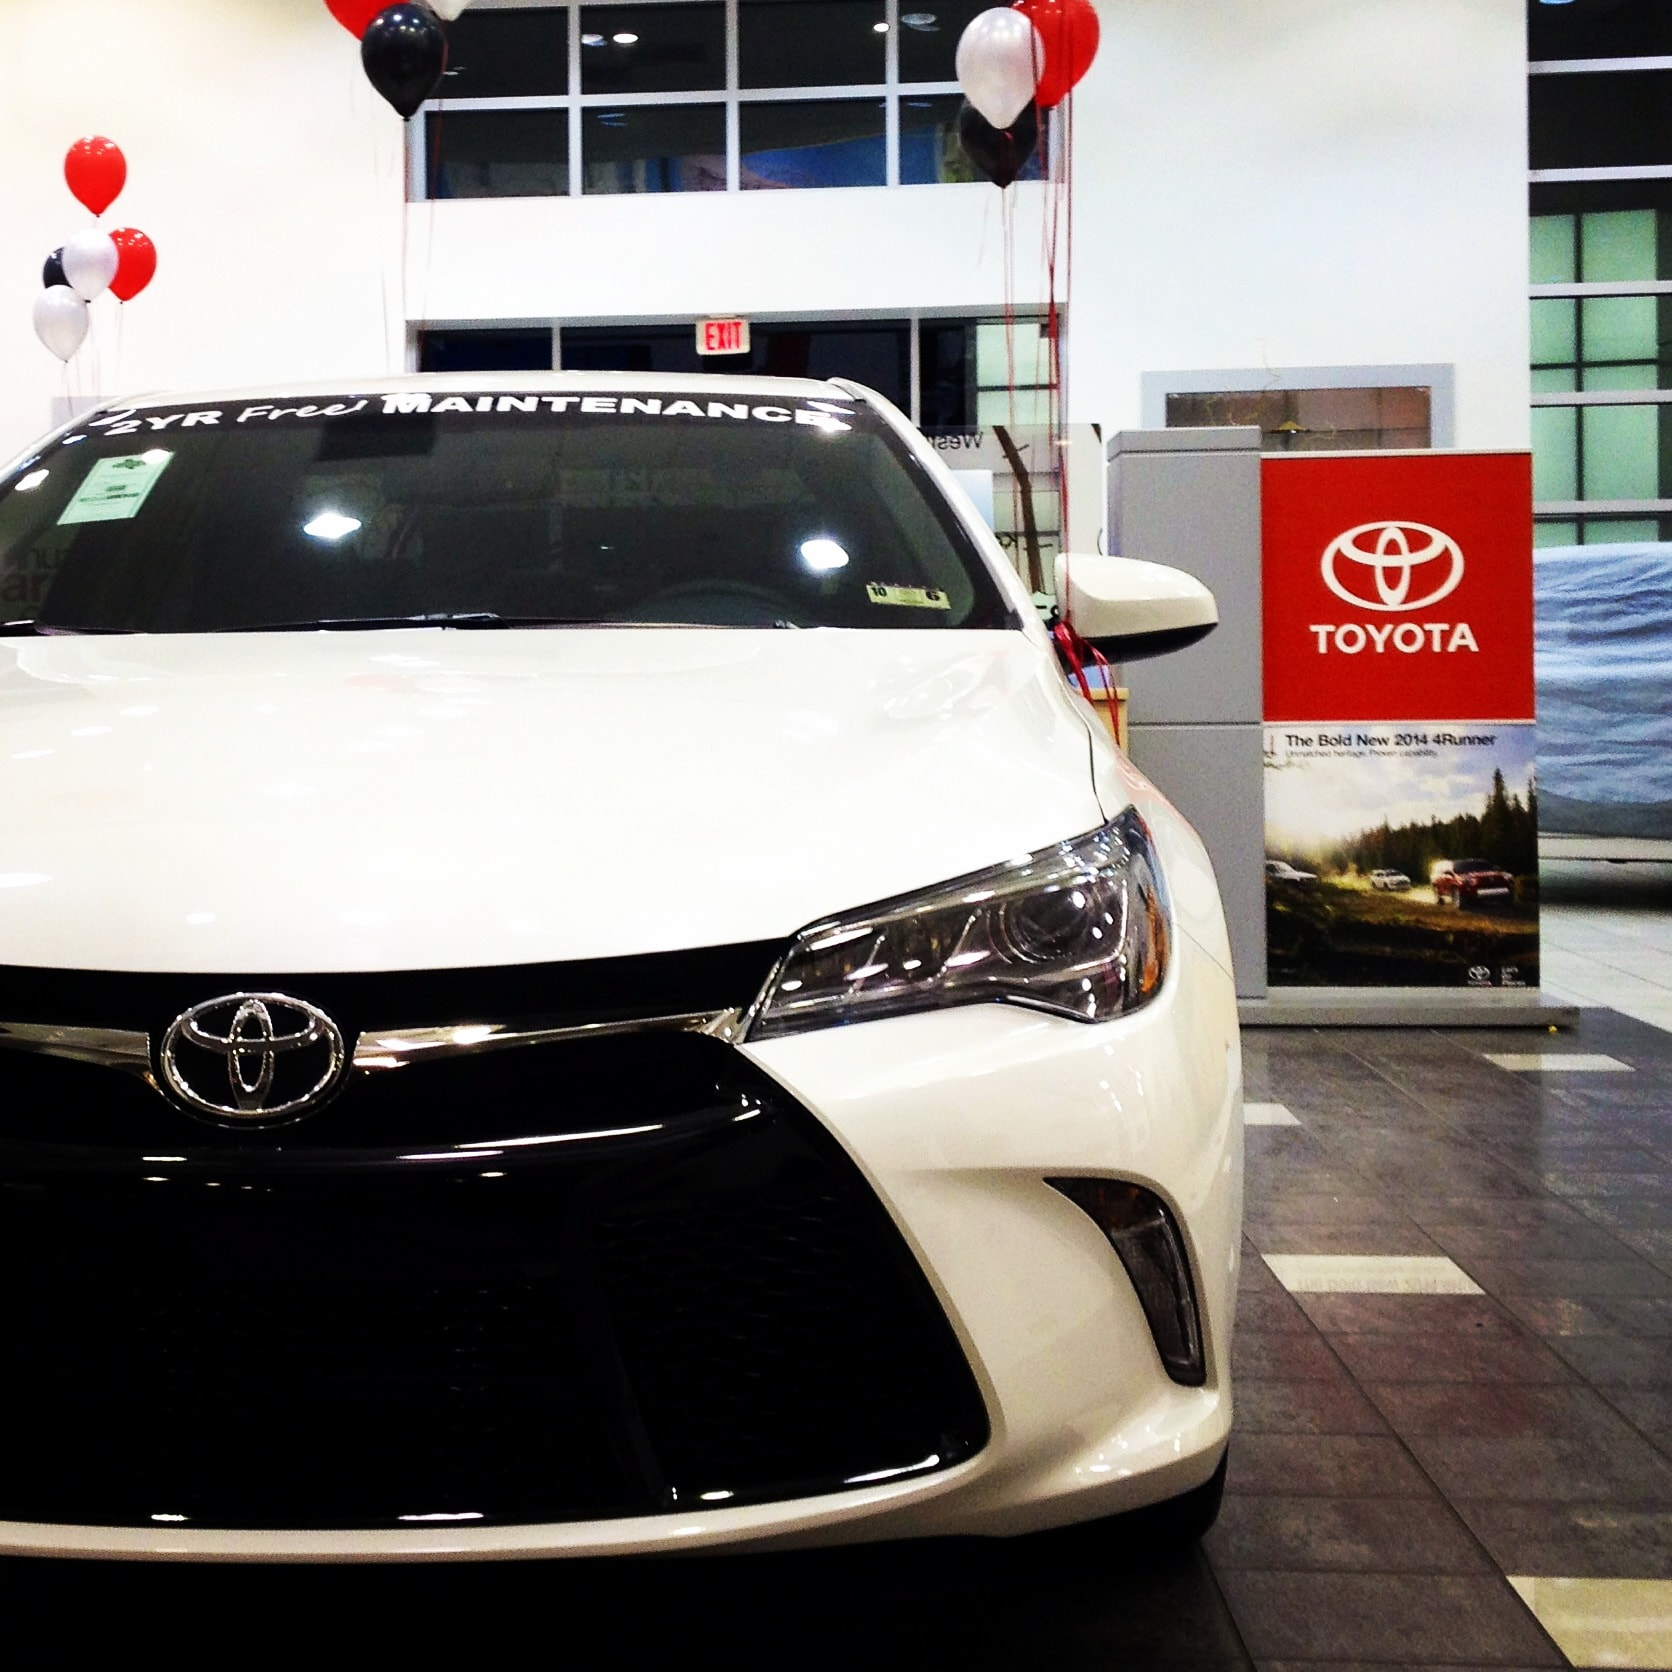 Texas toyota of grapevine would like to thank everyone who came out and celebrated the launch of the brand new 2015 toyota camry in dallas